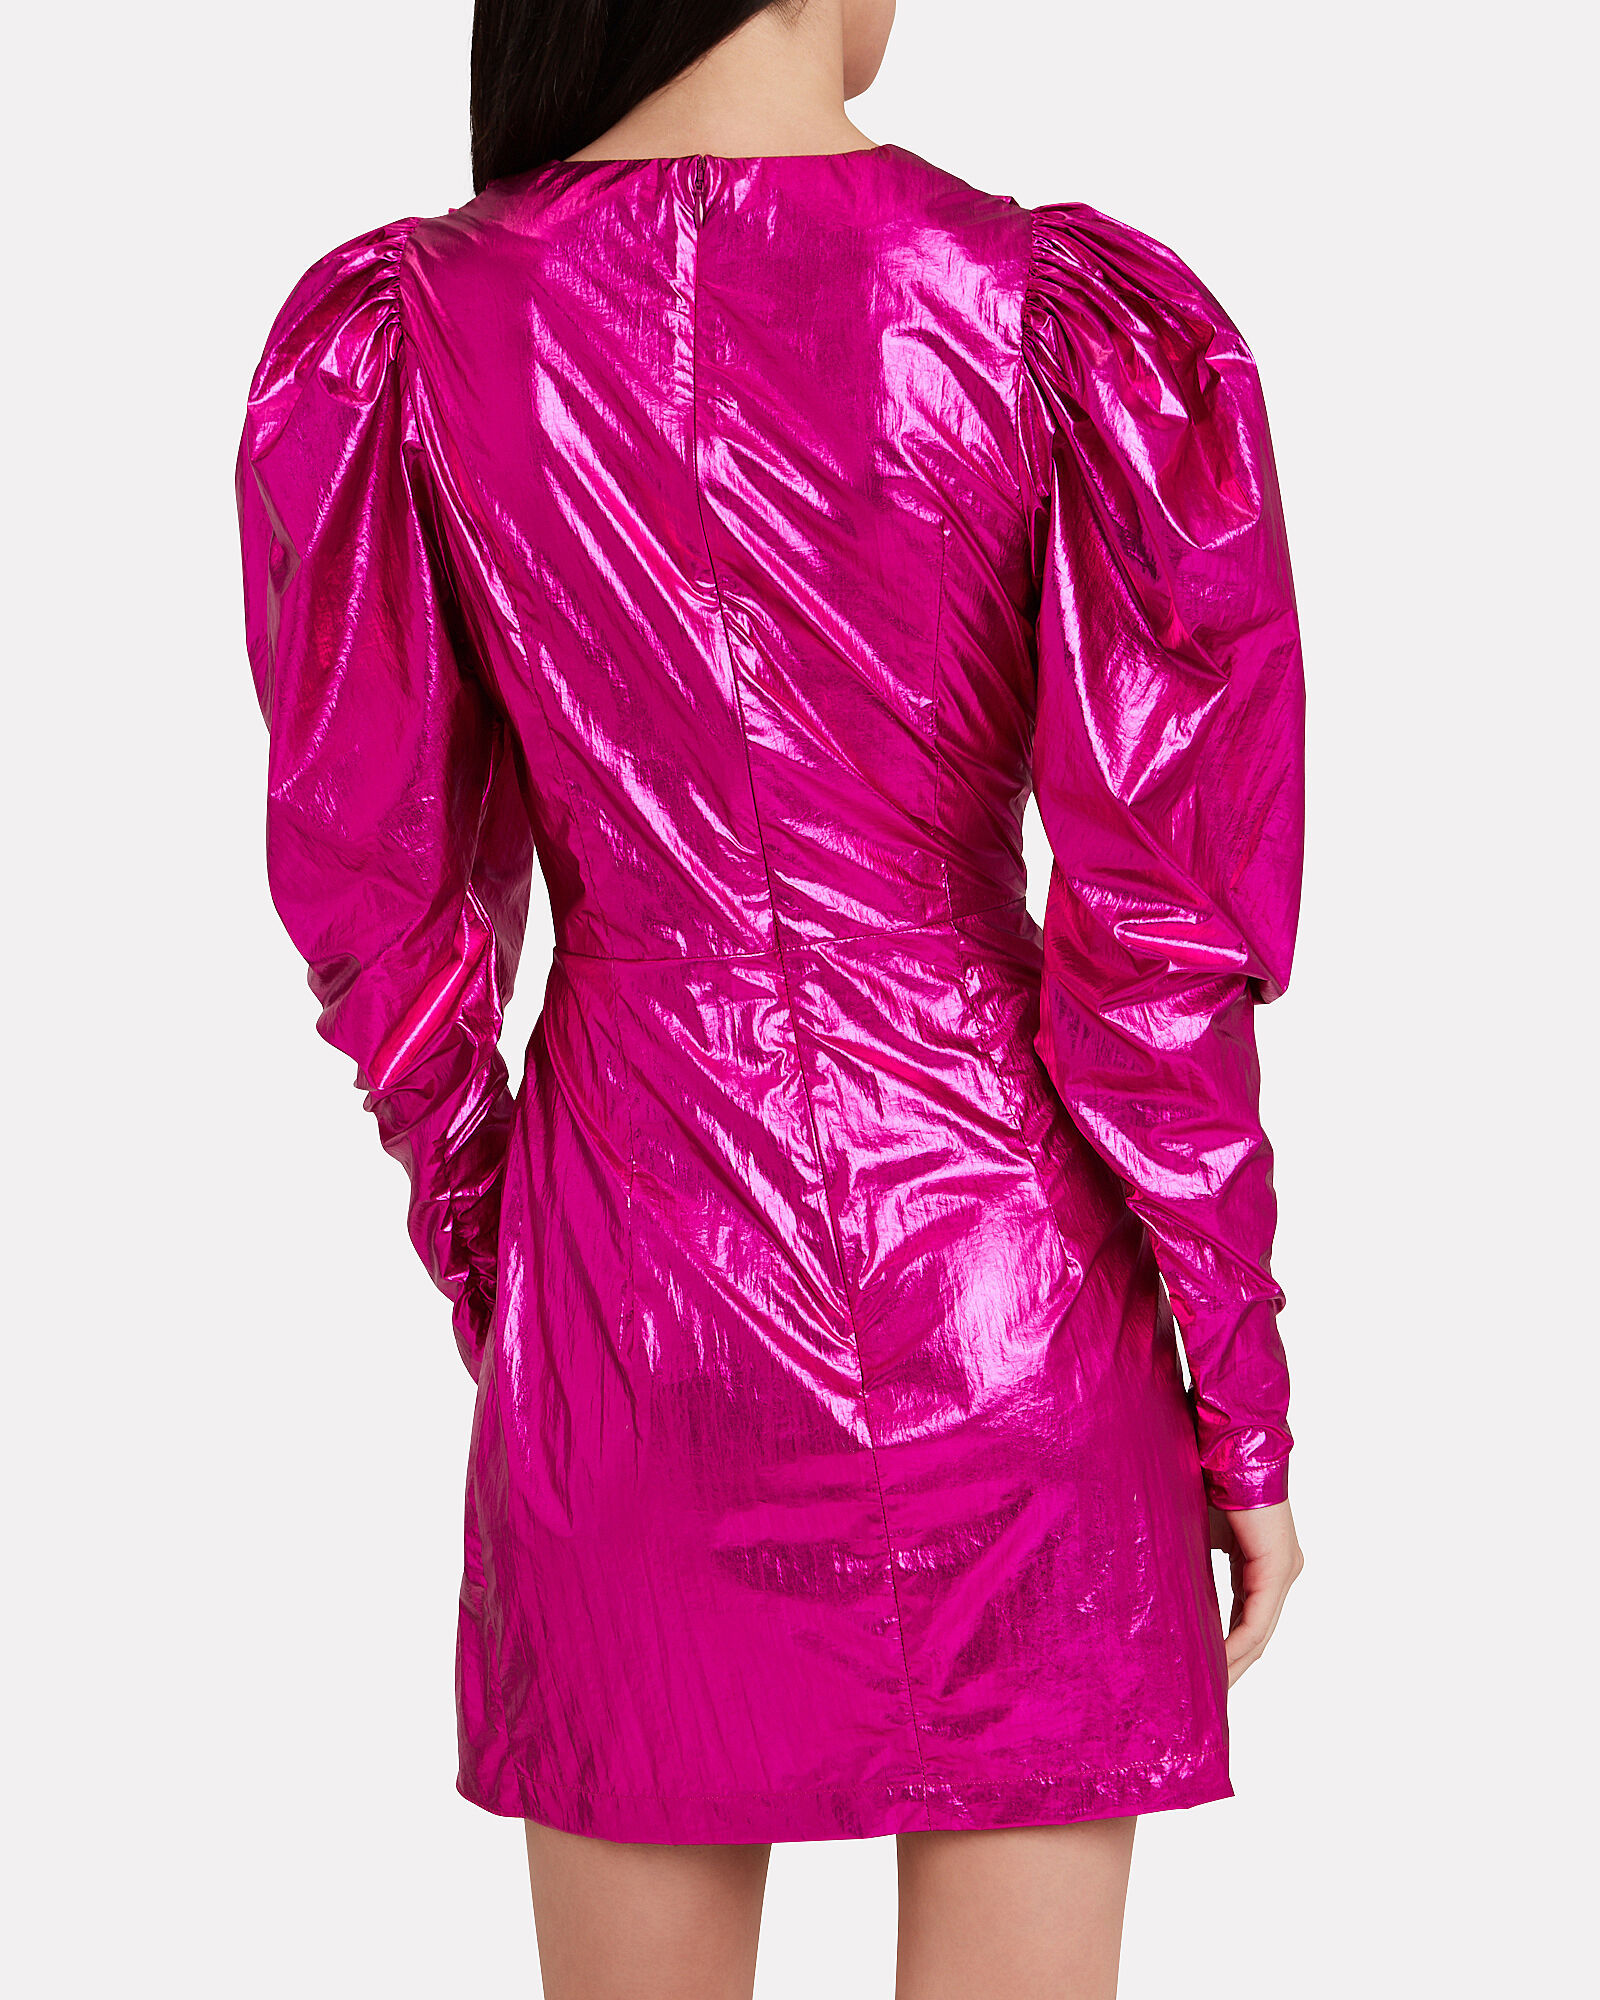 No. 24 Raspberry Metallic Mini Dress, PINK-DRK, hi-res